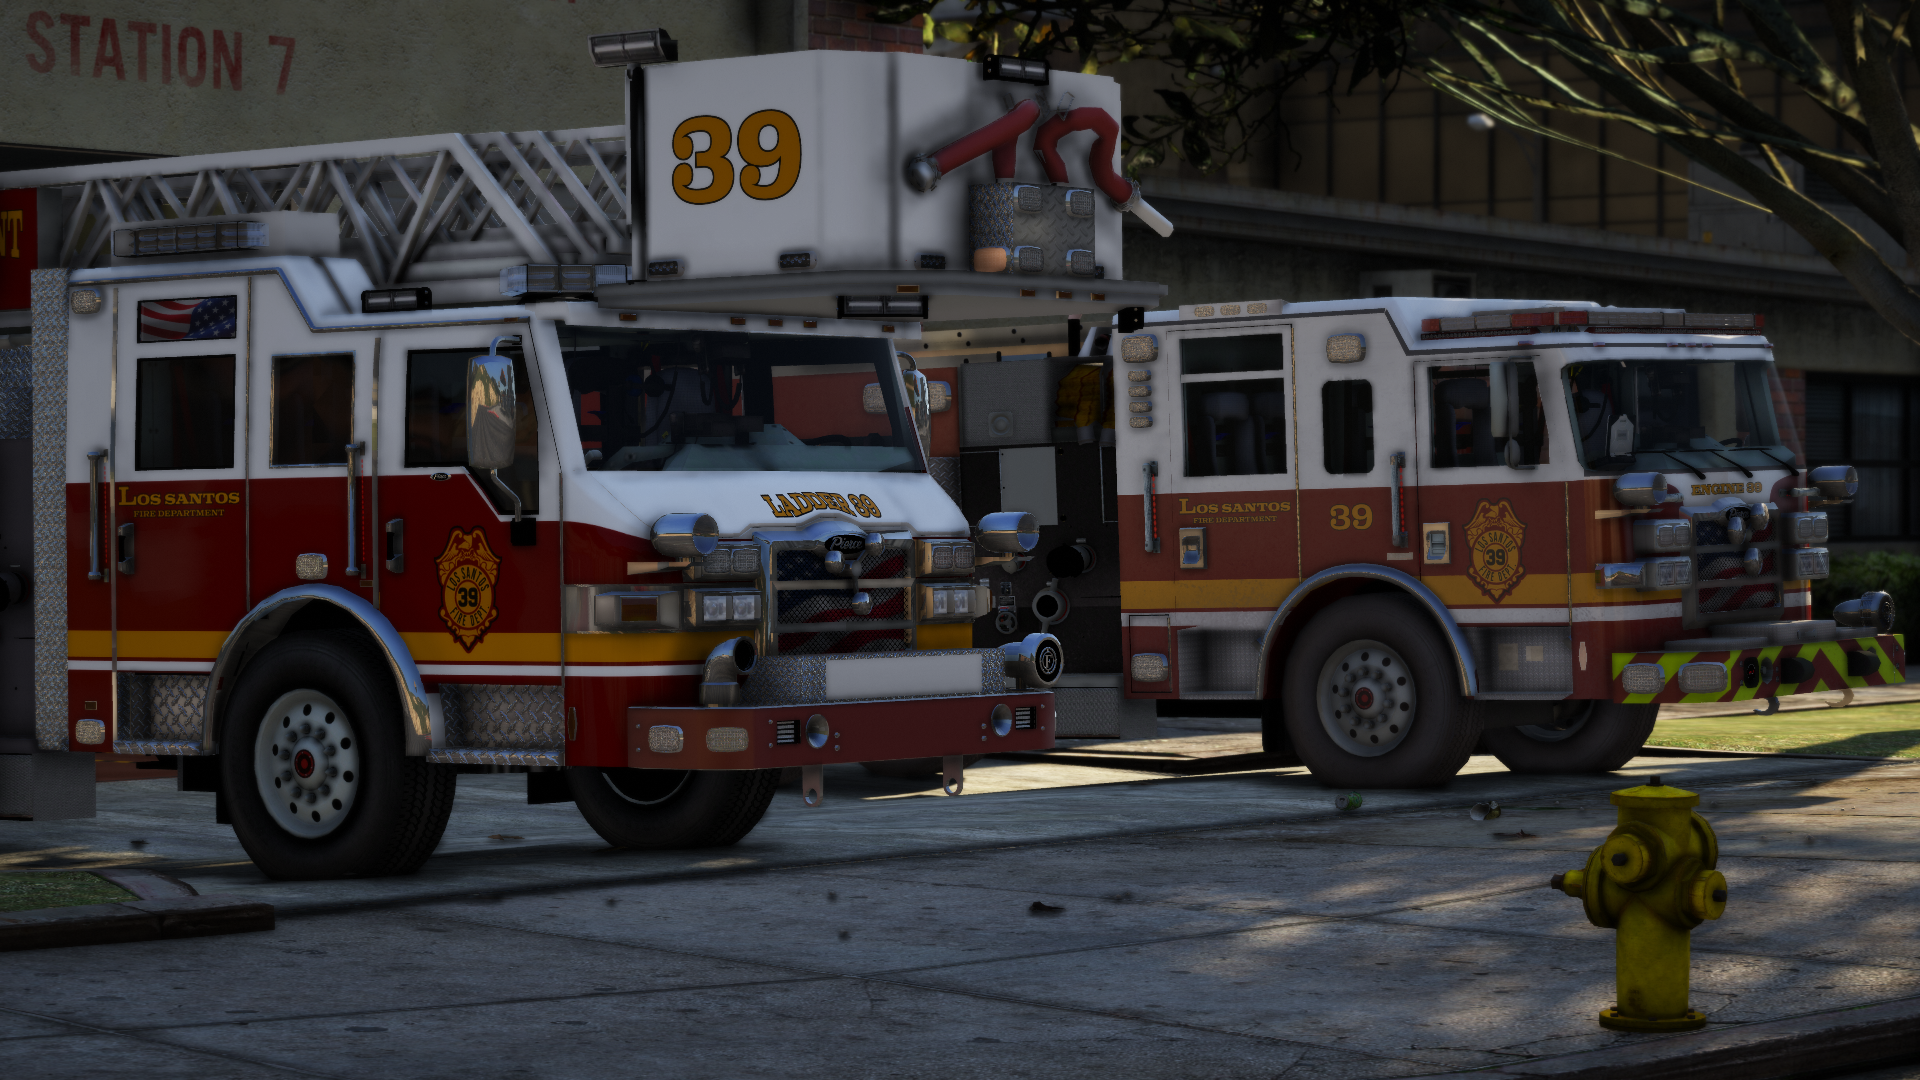 Engine and Ladder 39